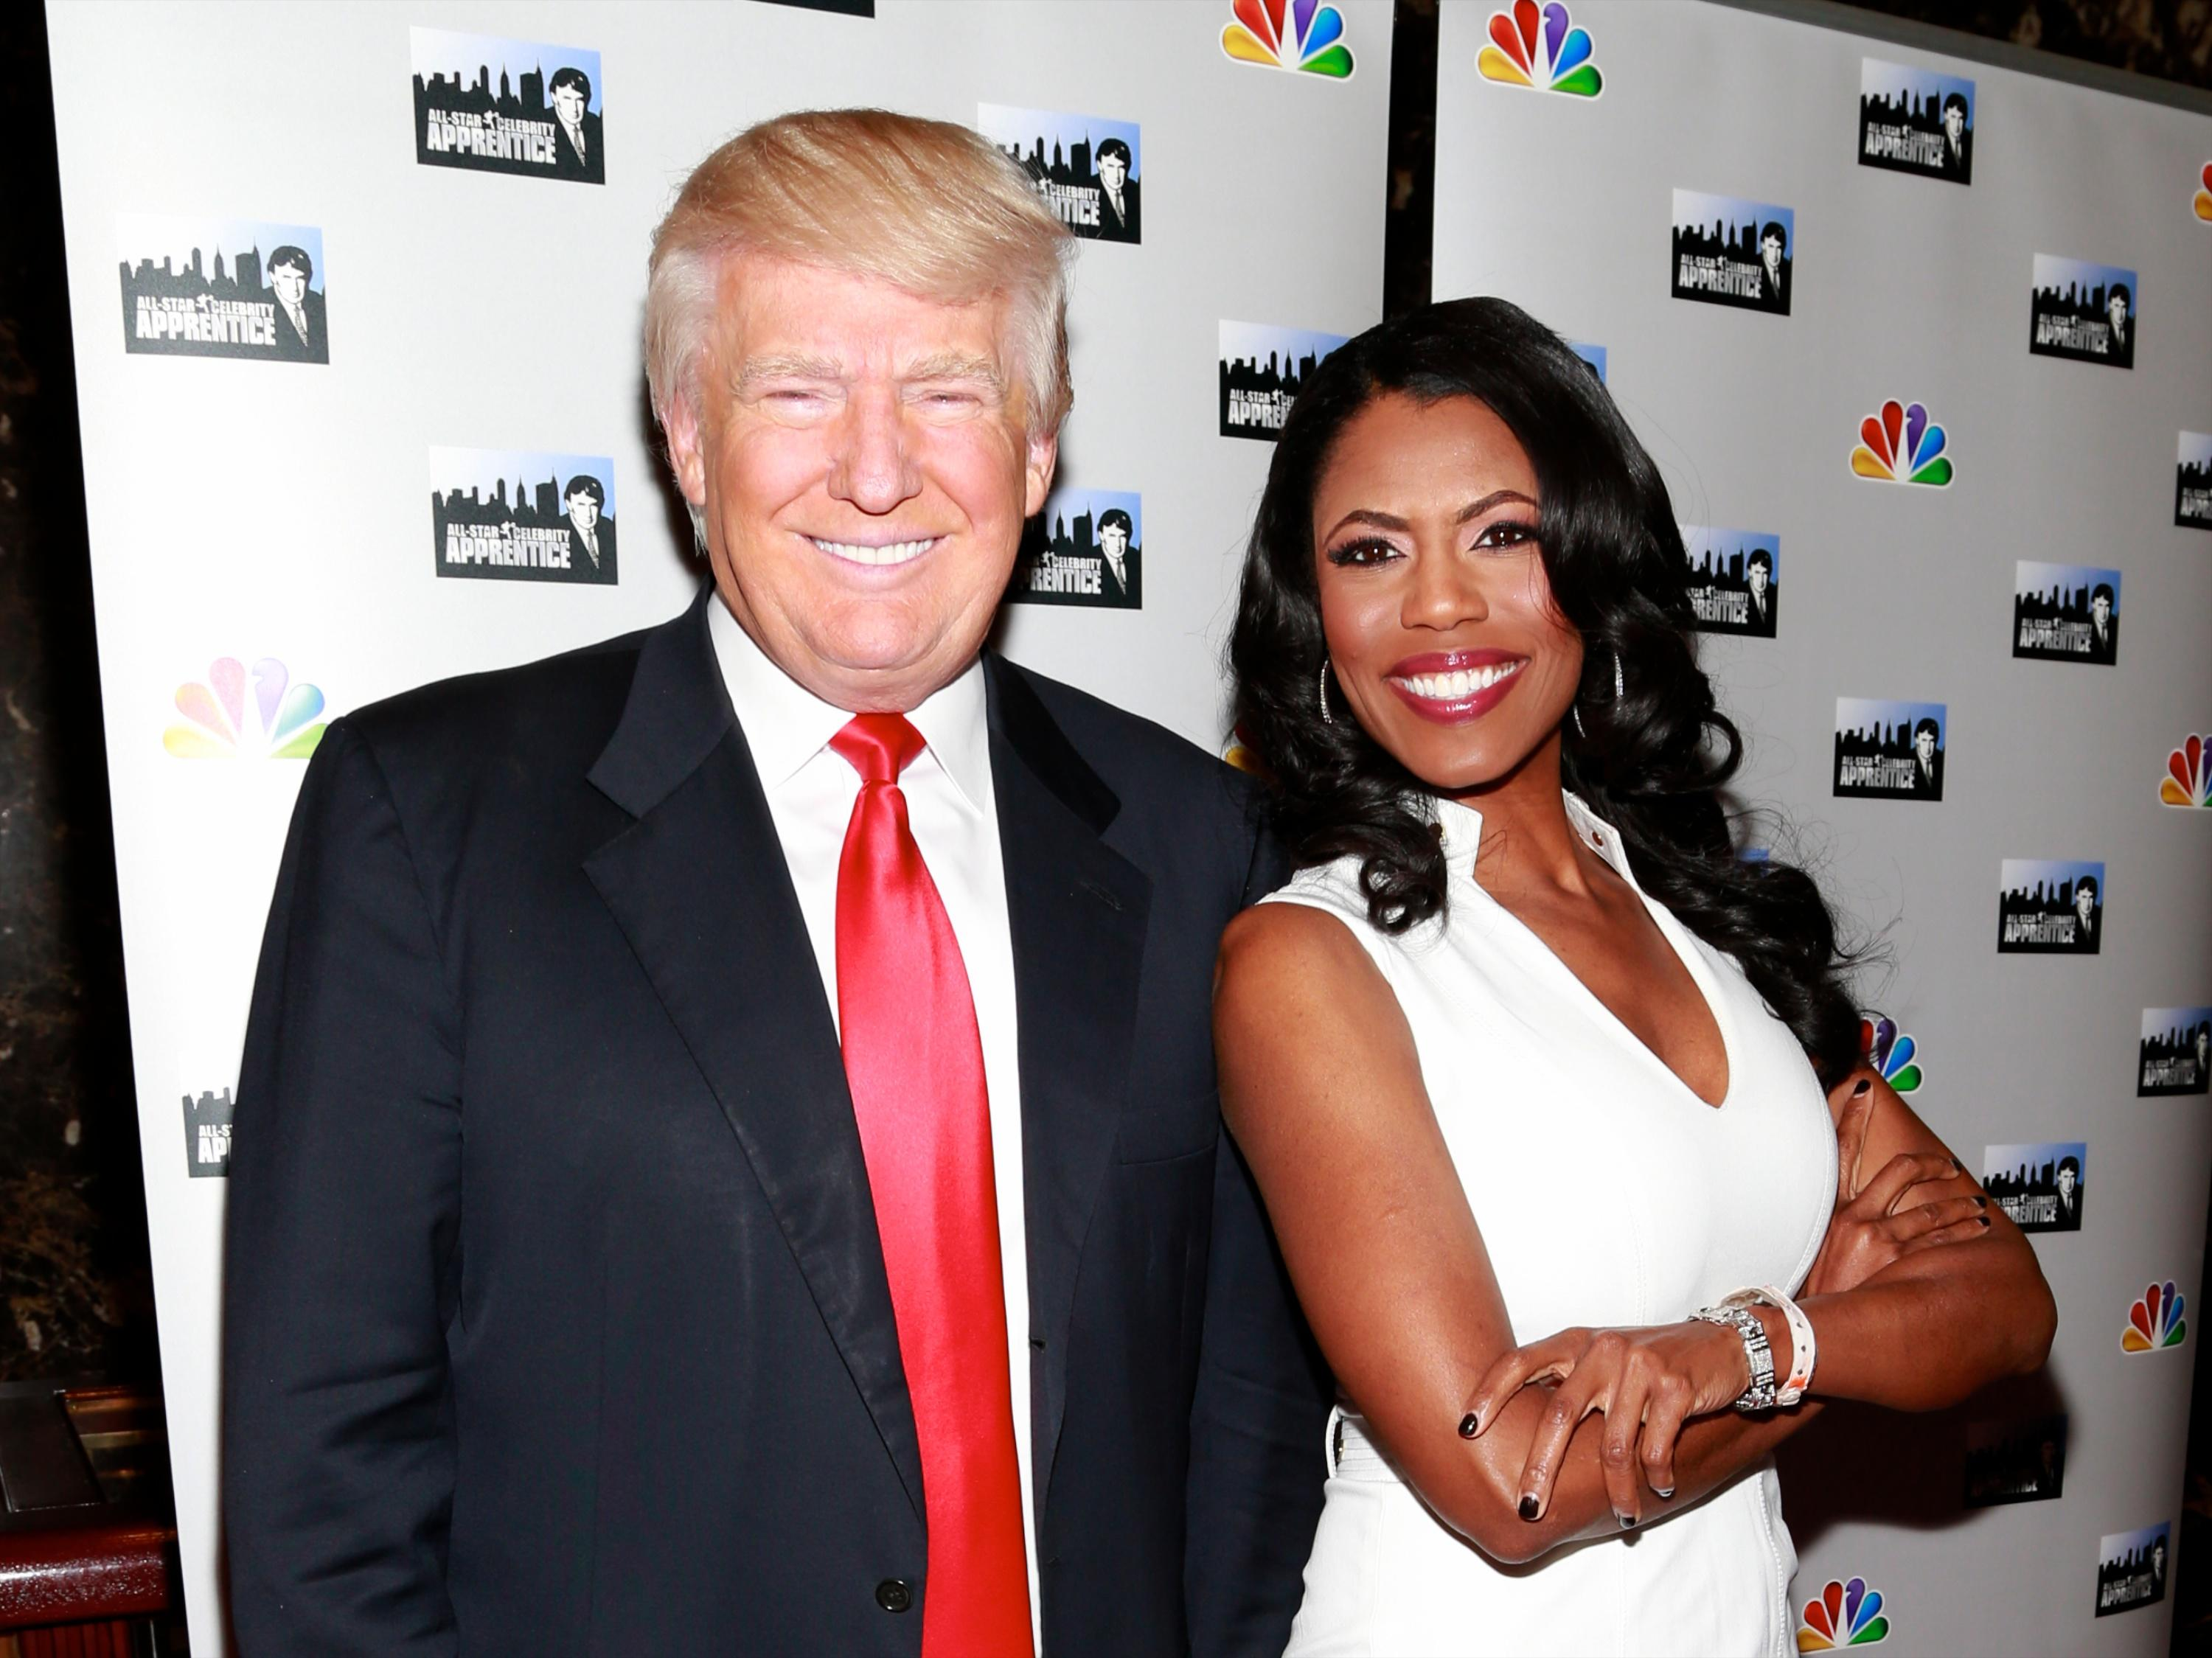 President Trump just called Omarosa a 'dog,' and people are outraged